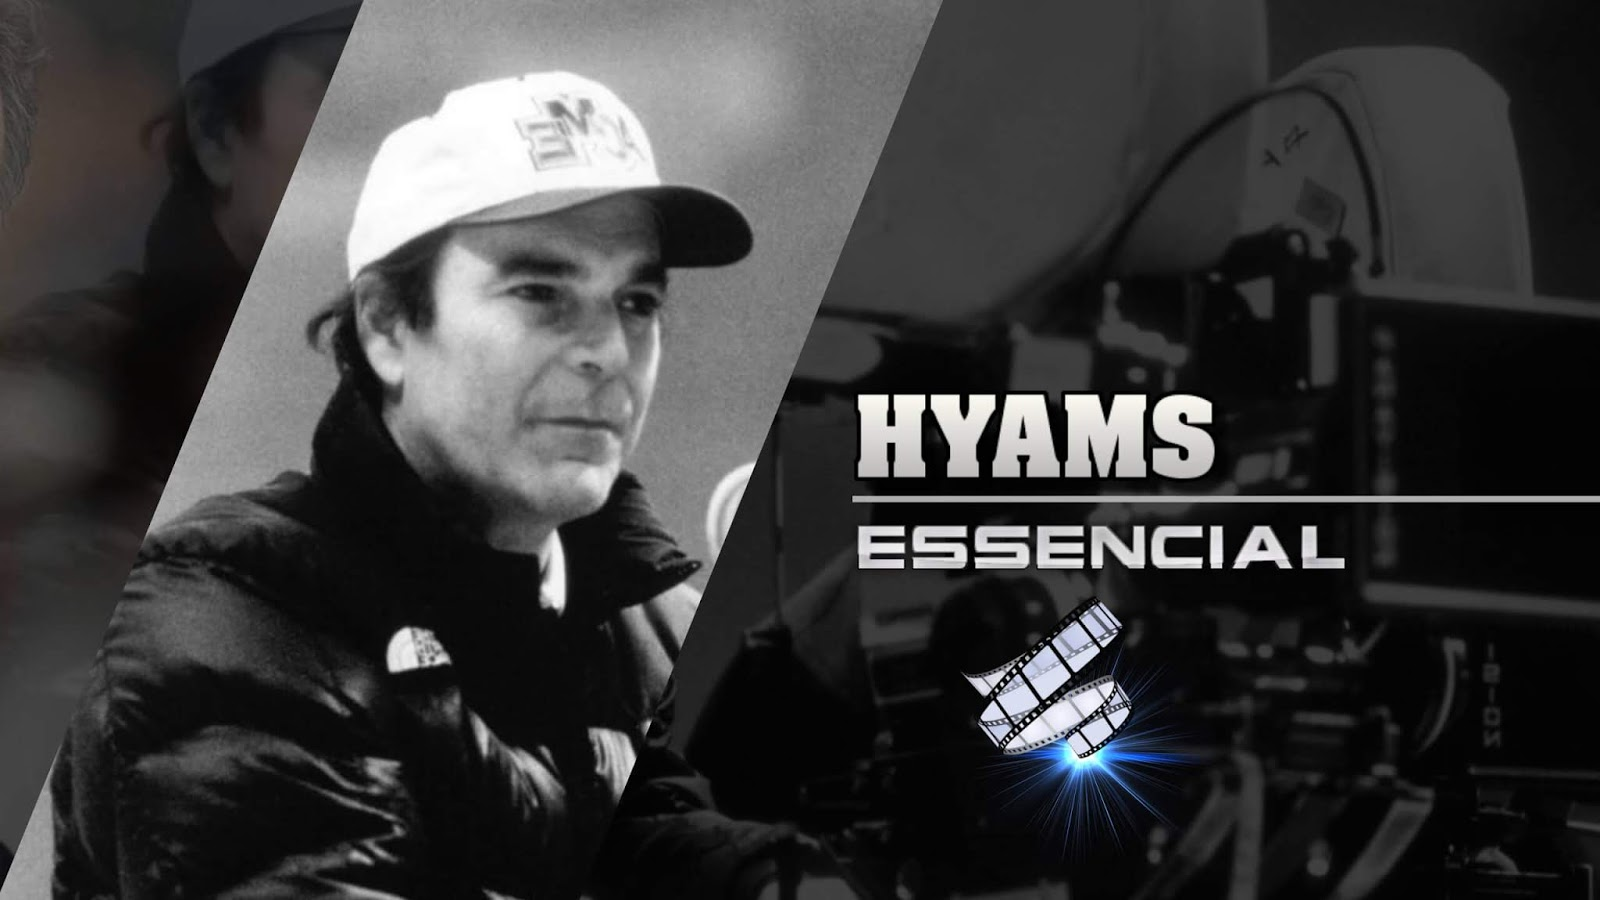 peter-hyams-10-filmes-essenciais